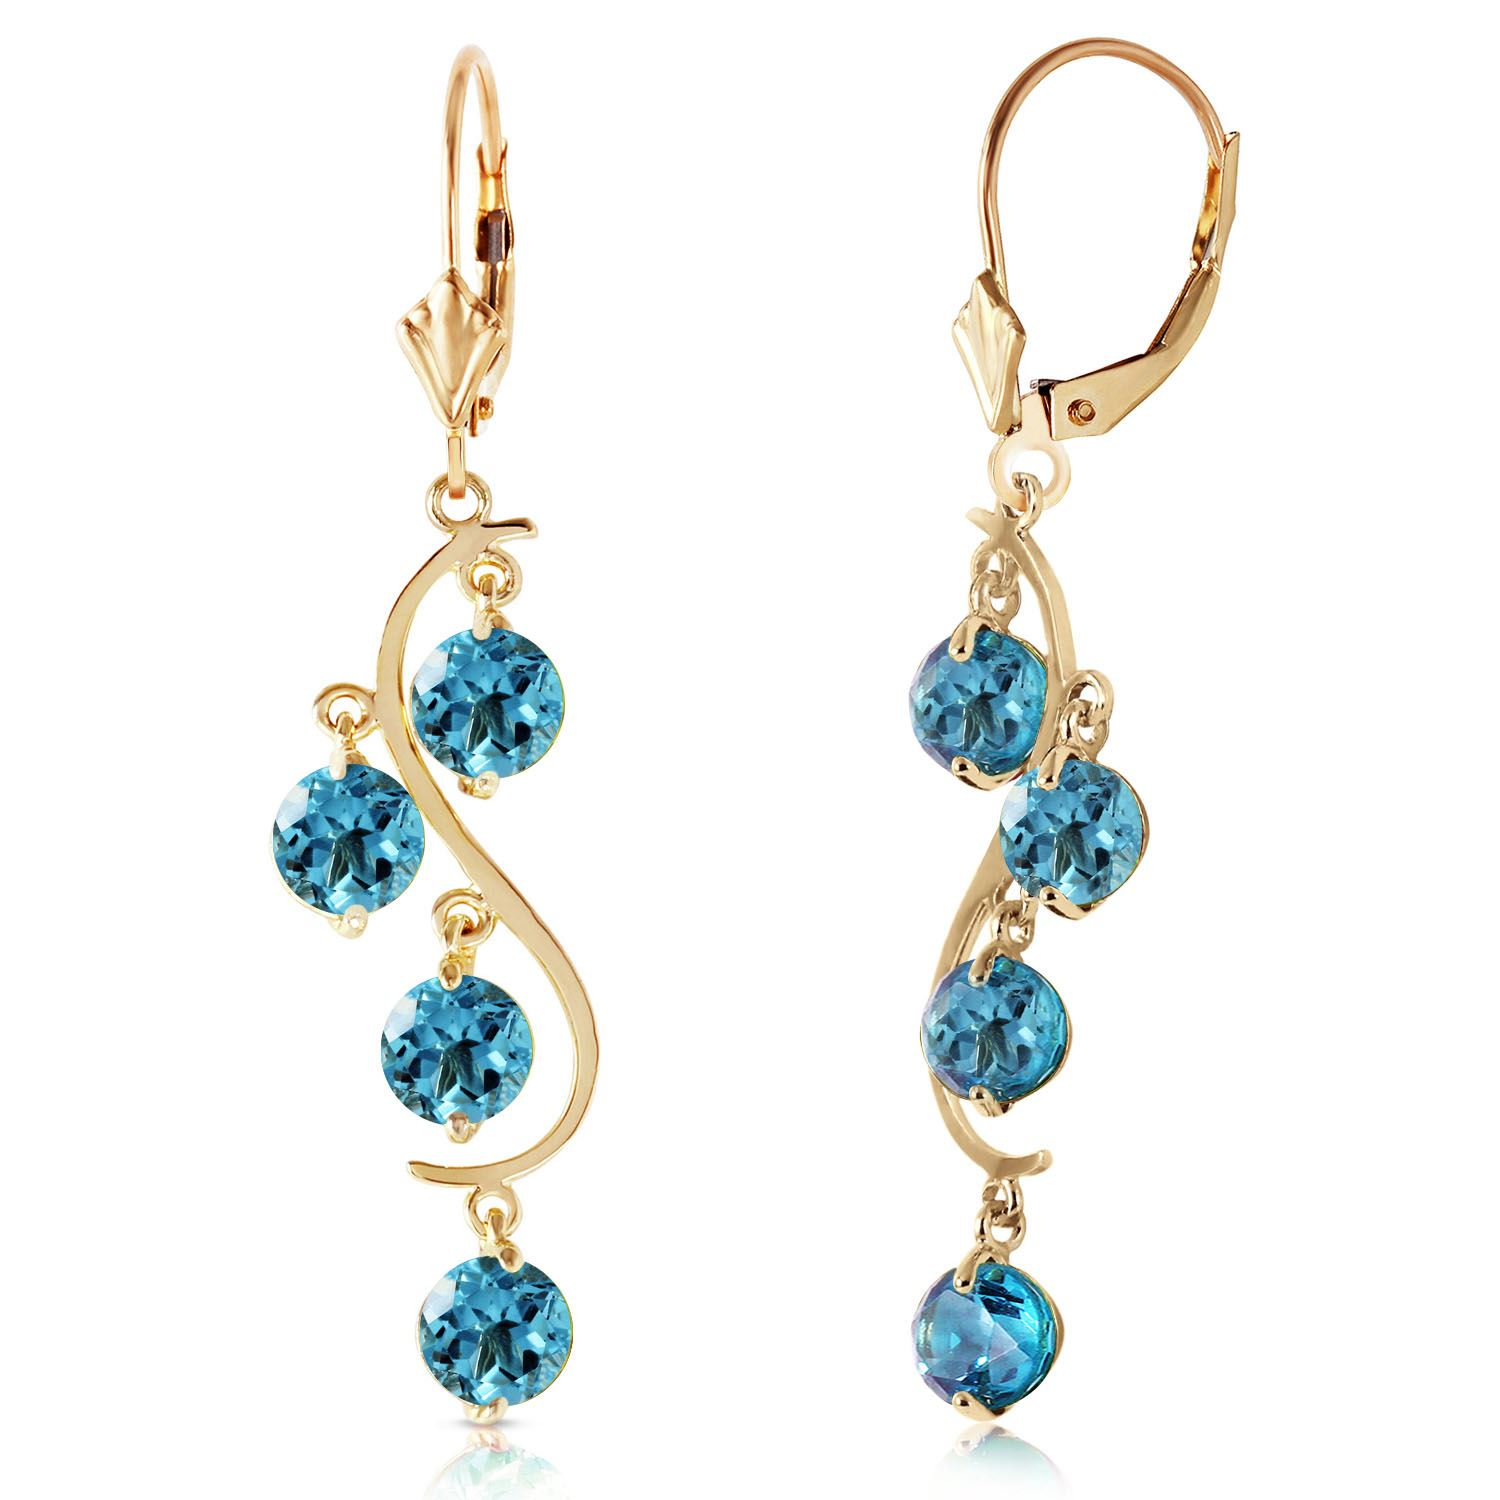 earrings jewellery jewelry topaz image diamond blue boutique product modern